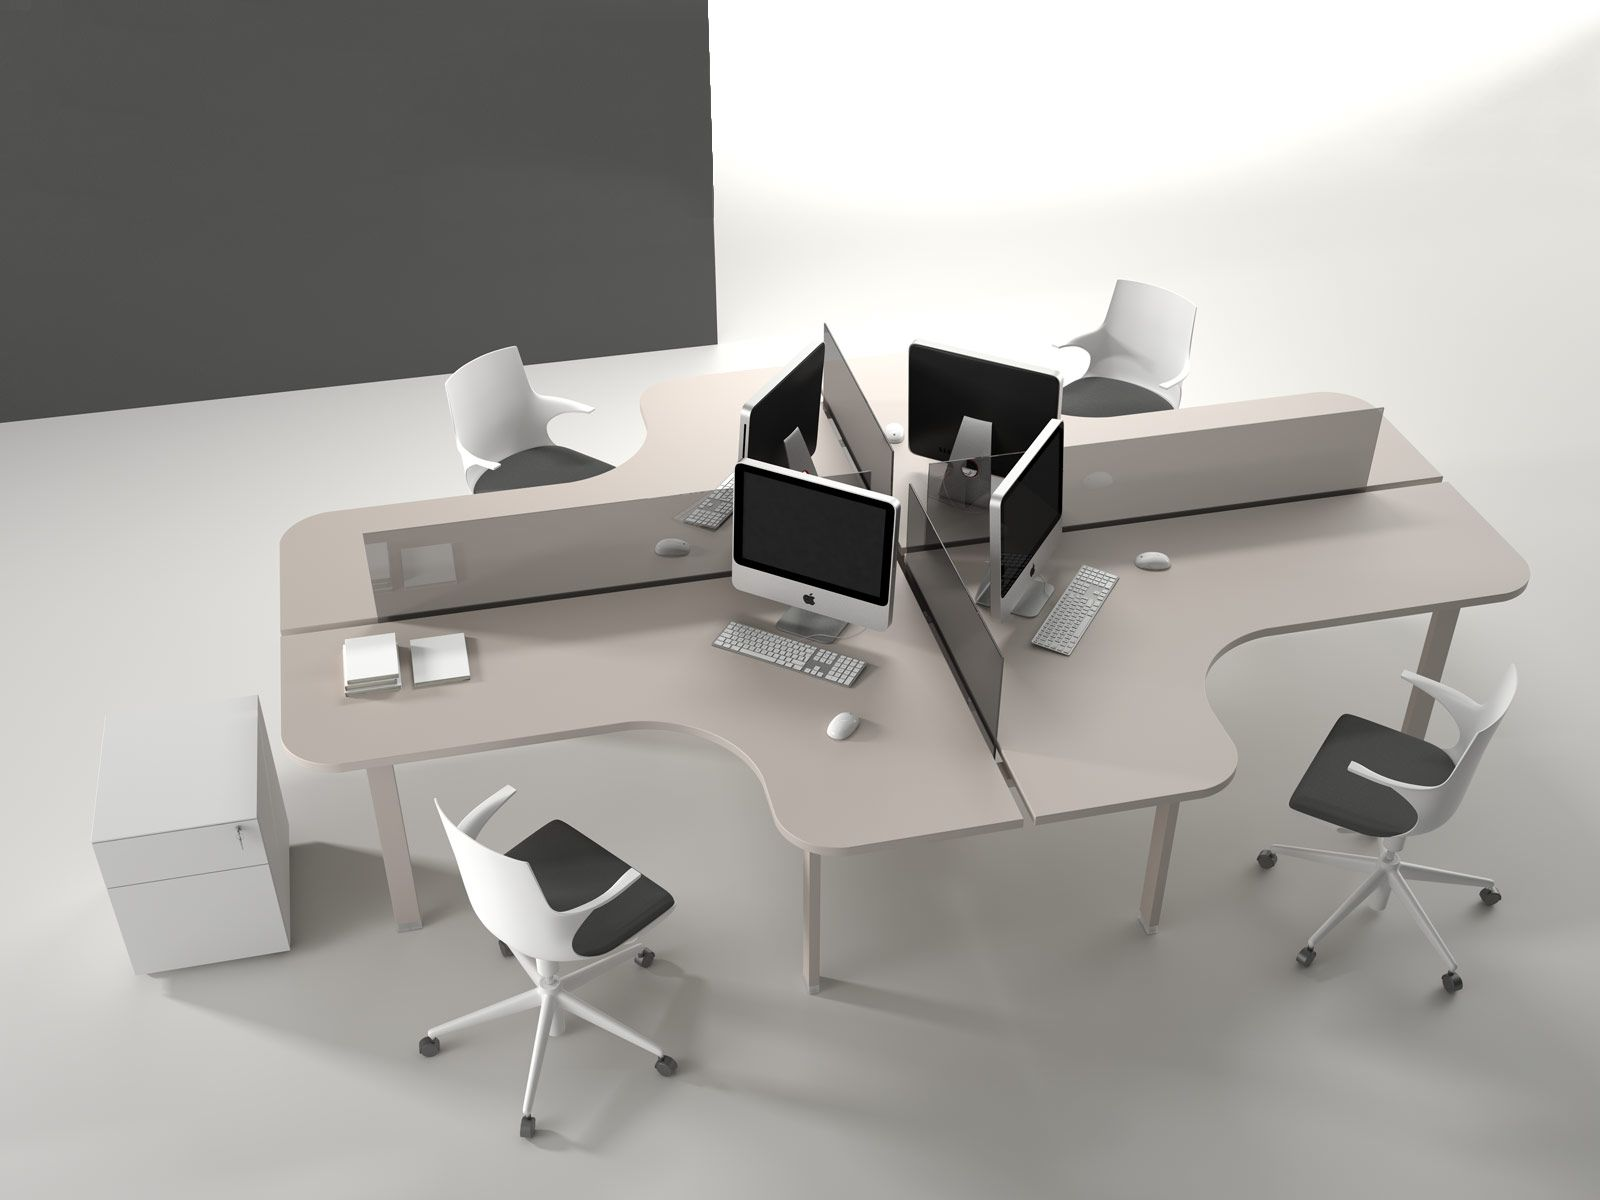 Best Images About Alea Workstations  Open Plan On Pinterest - Open office furniture